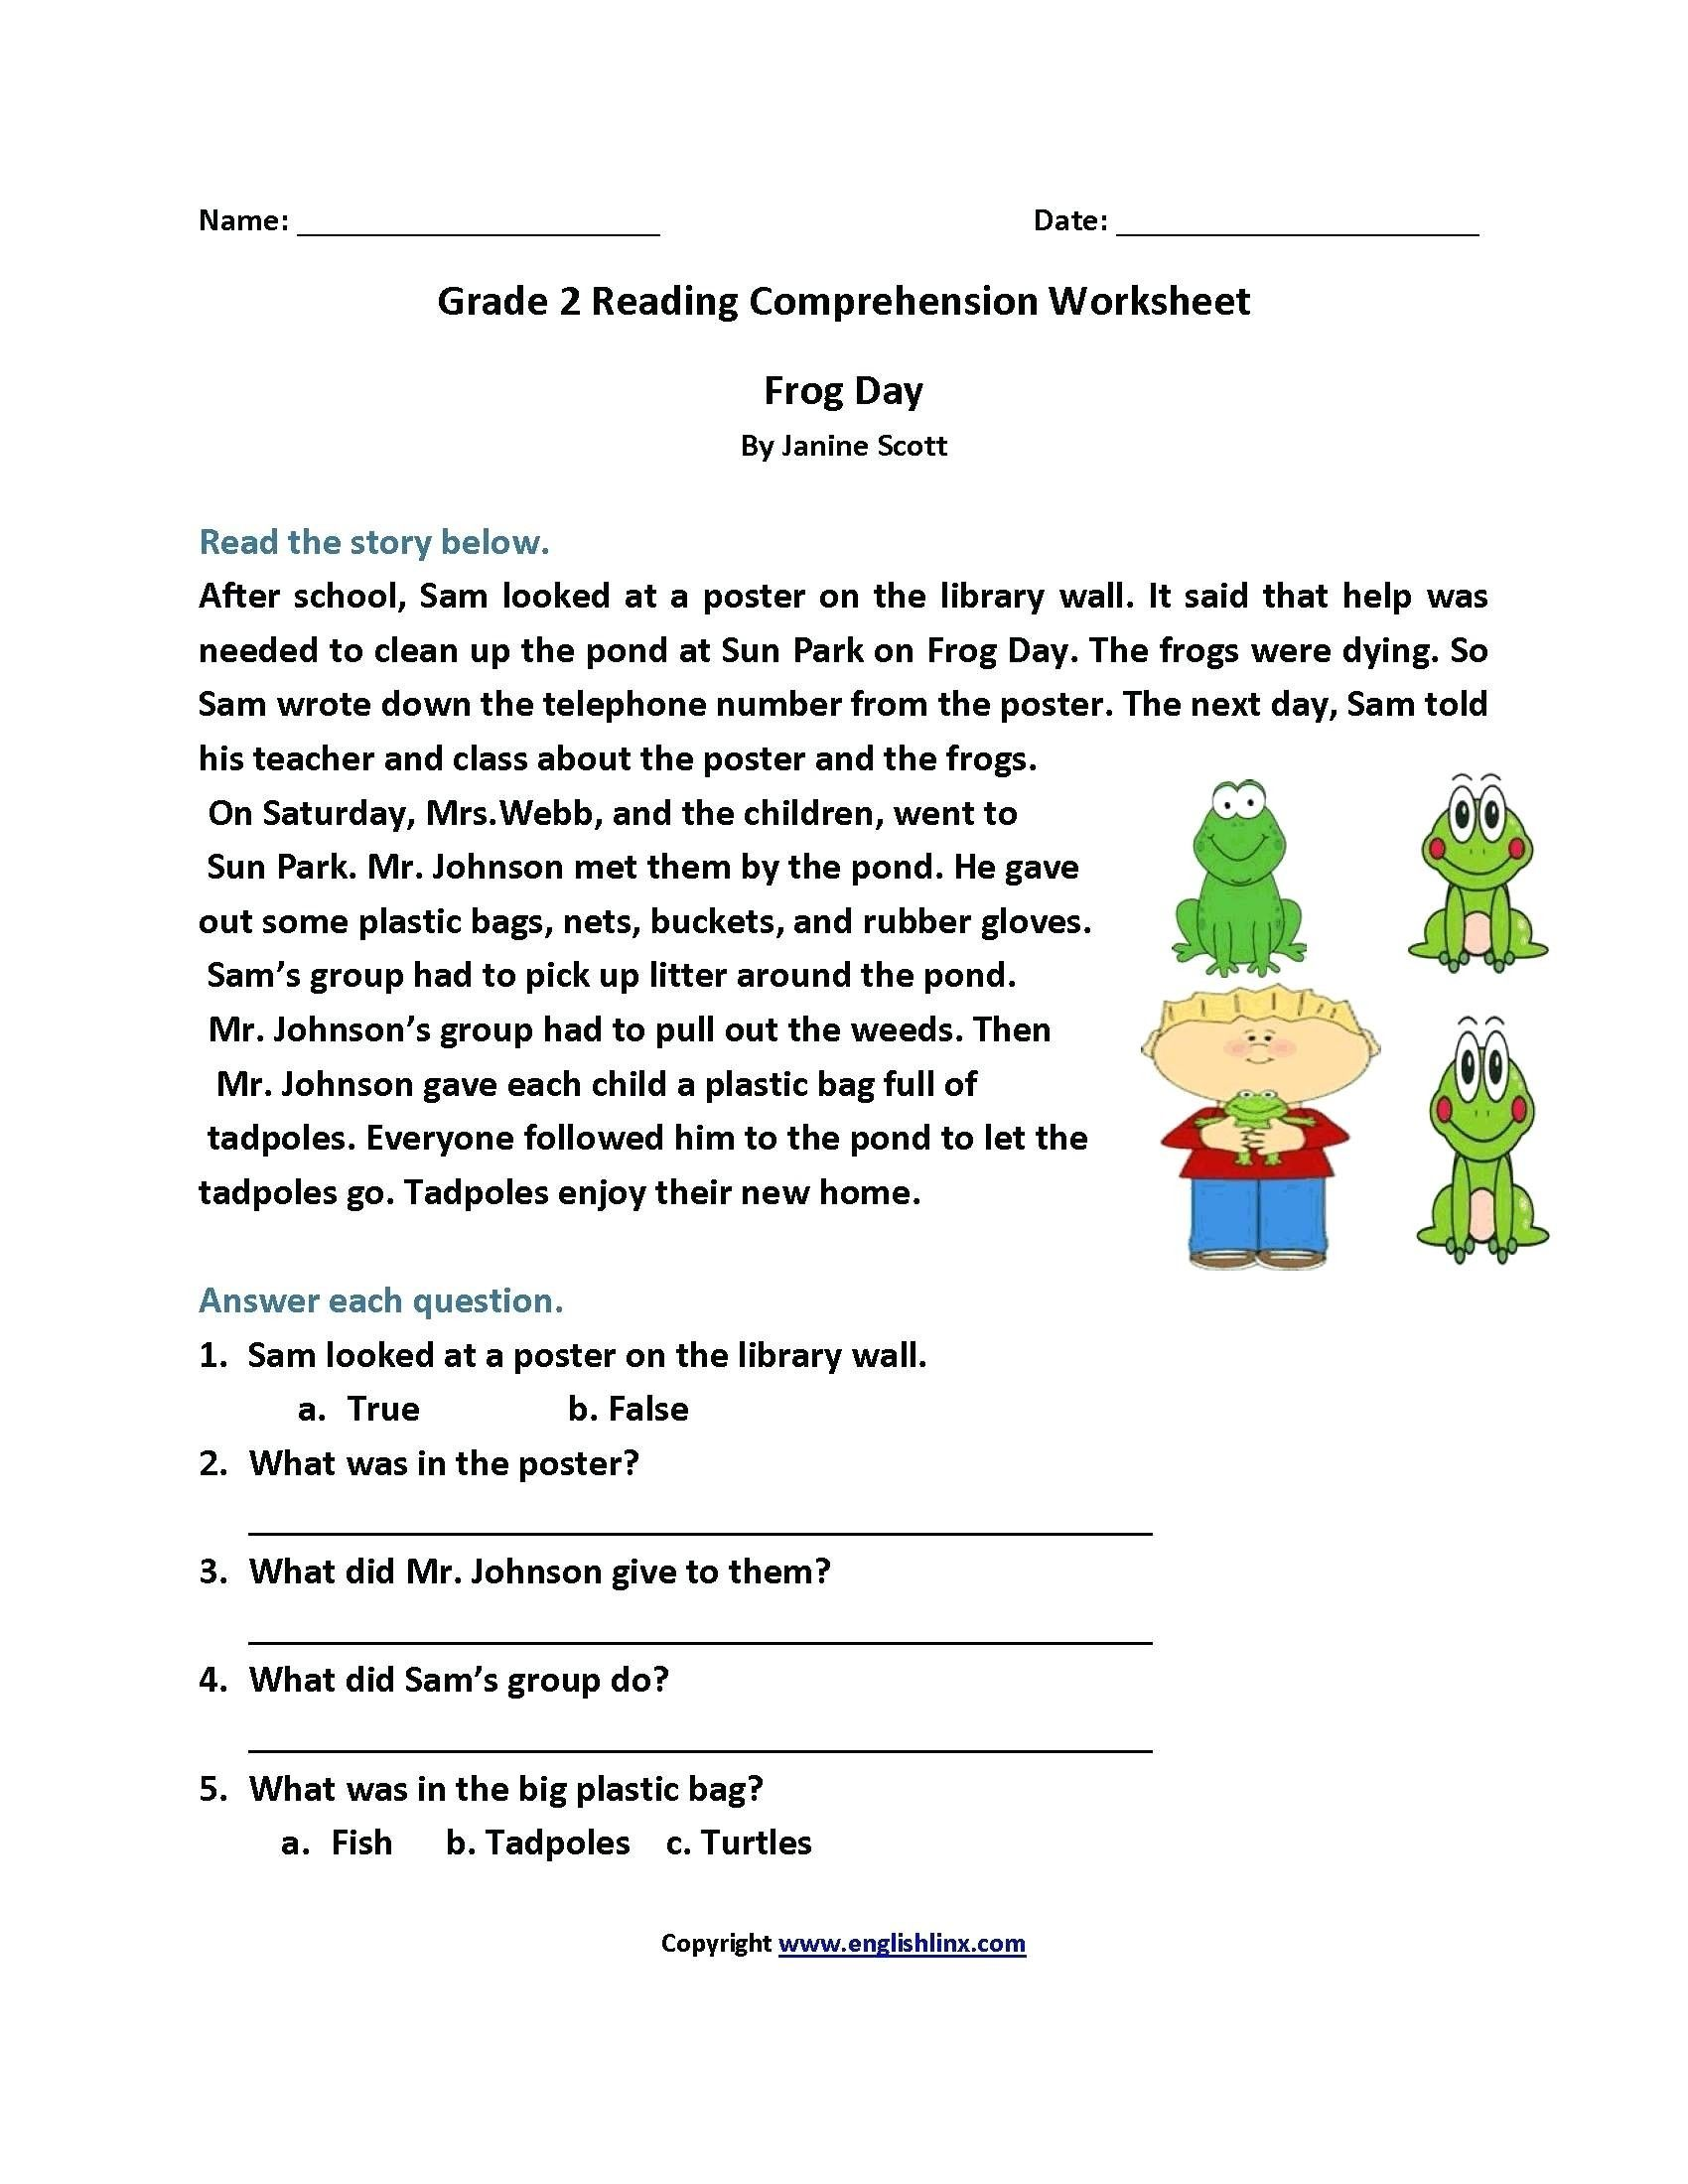 hight resolution of Cloze Procedure Worksheet 4th Grade   Printable Worksheets and Activities  for Teachers